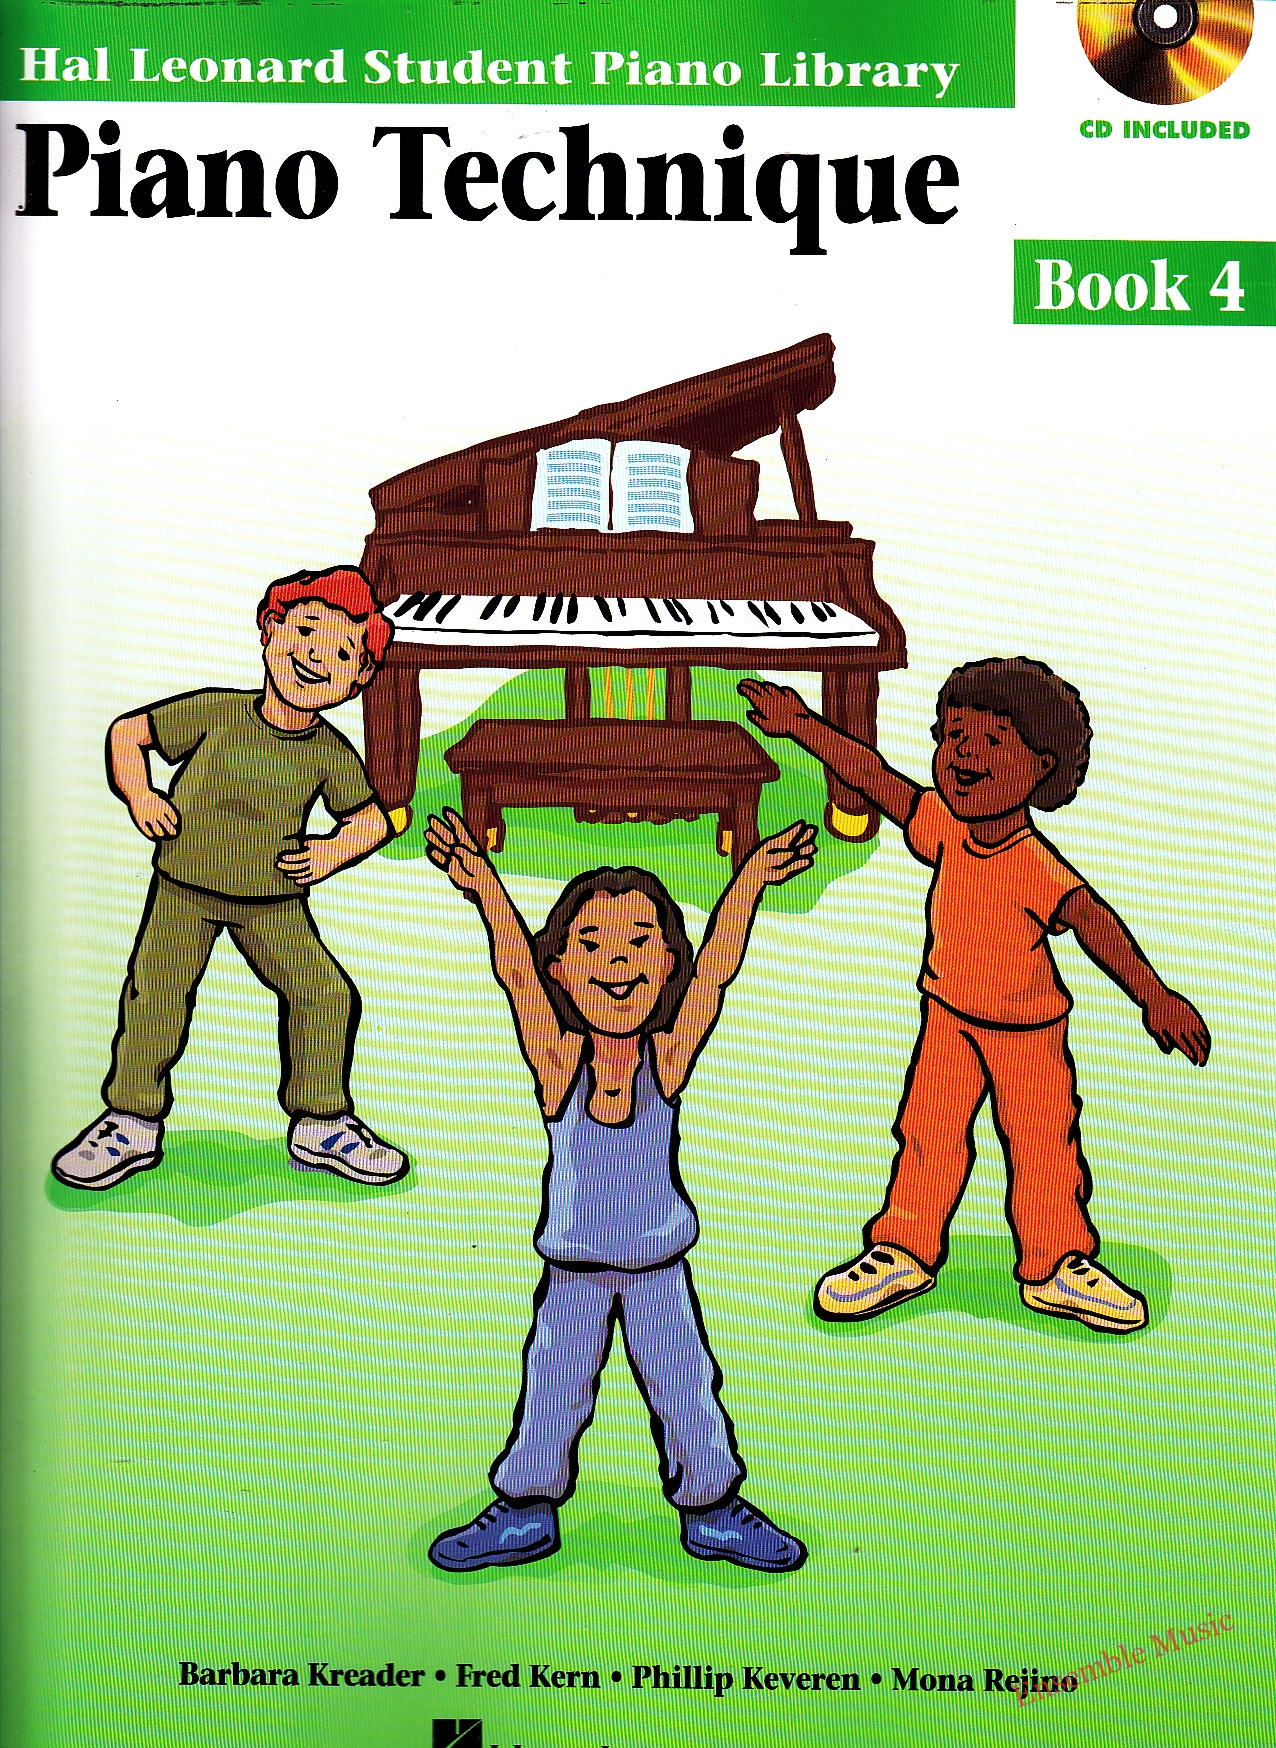 Piano Technique Book 4 with cd